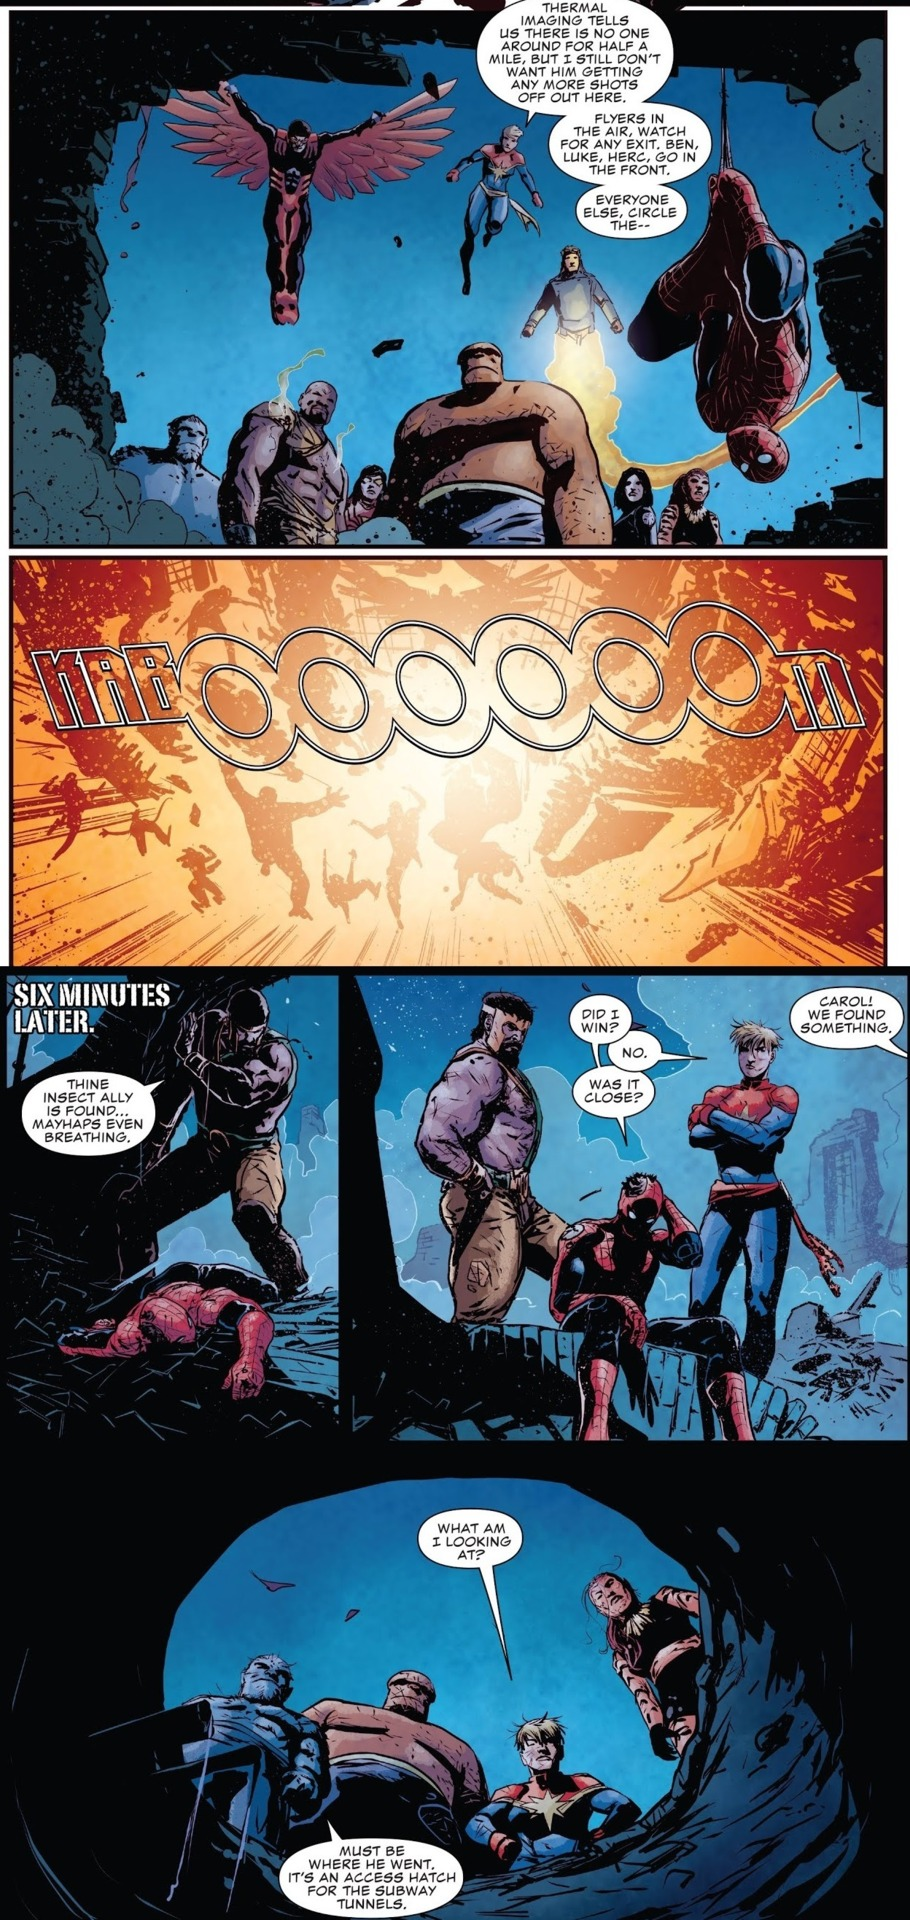 Spider-Man is KO'd for 6 minutes by War Machine's blast and probably would have been out for far longer if the heroes hadn't found and woken him up lmao.